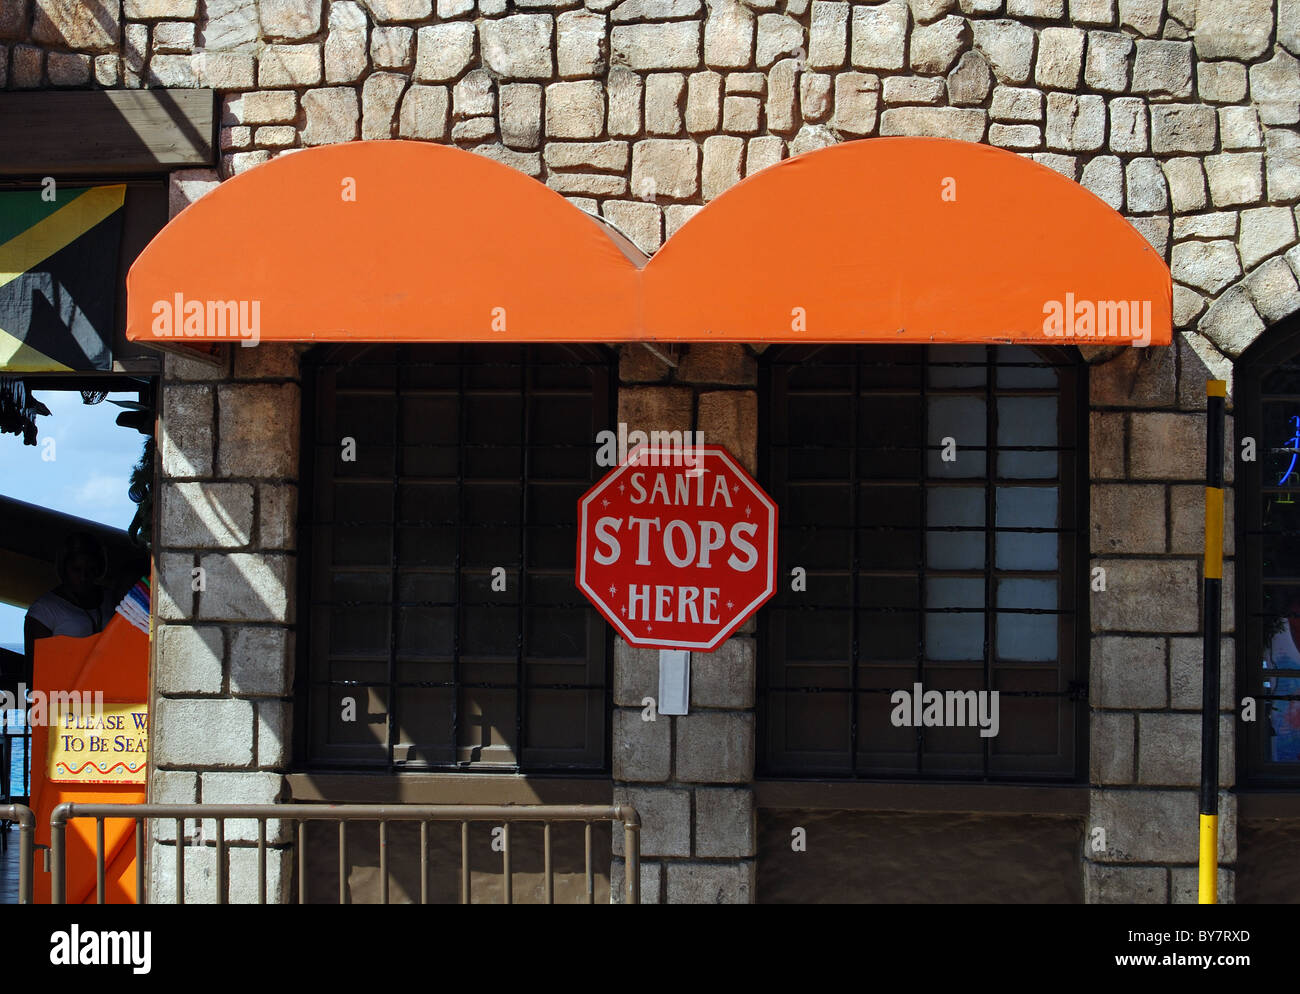 Novelty 'Santa Stops Here' sign, Montego Bay, Jamaica, Caribbean. - Stock Image